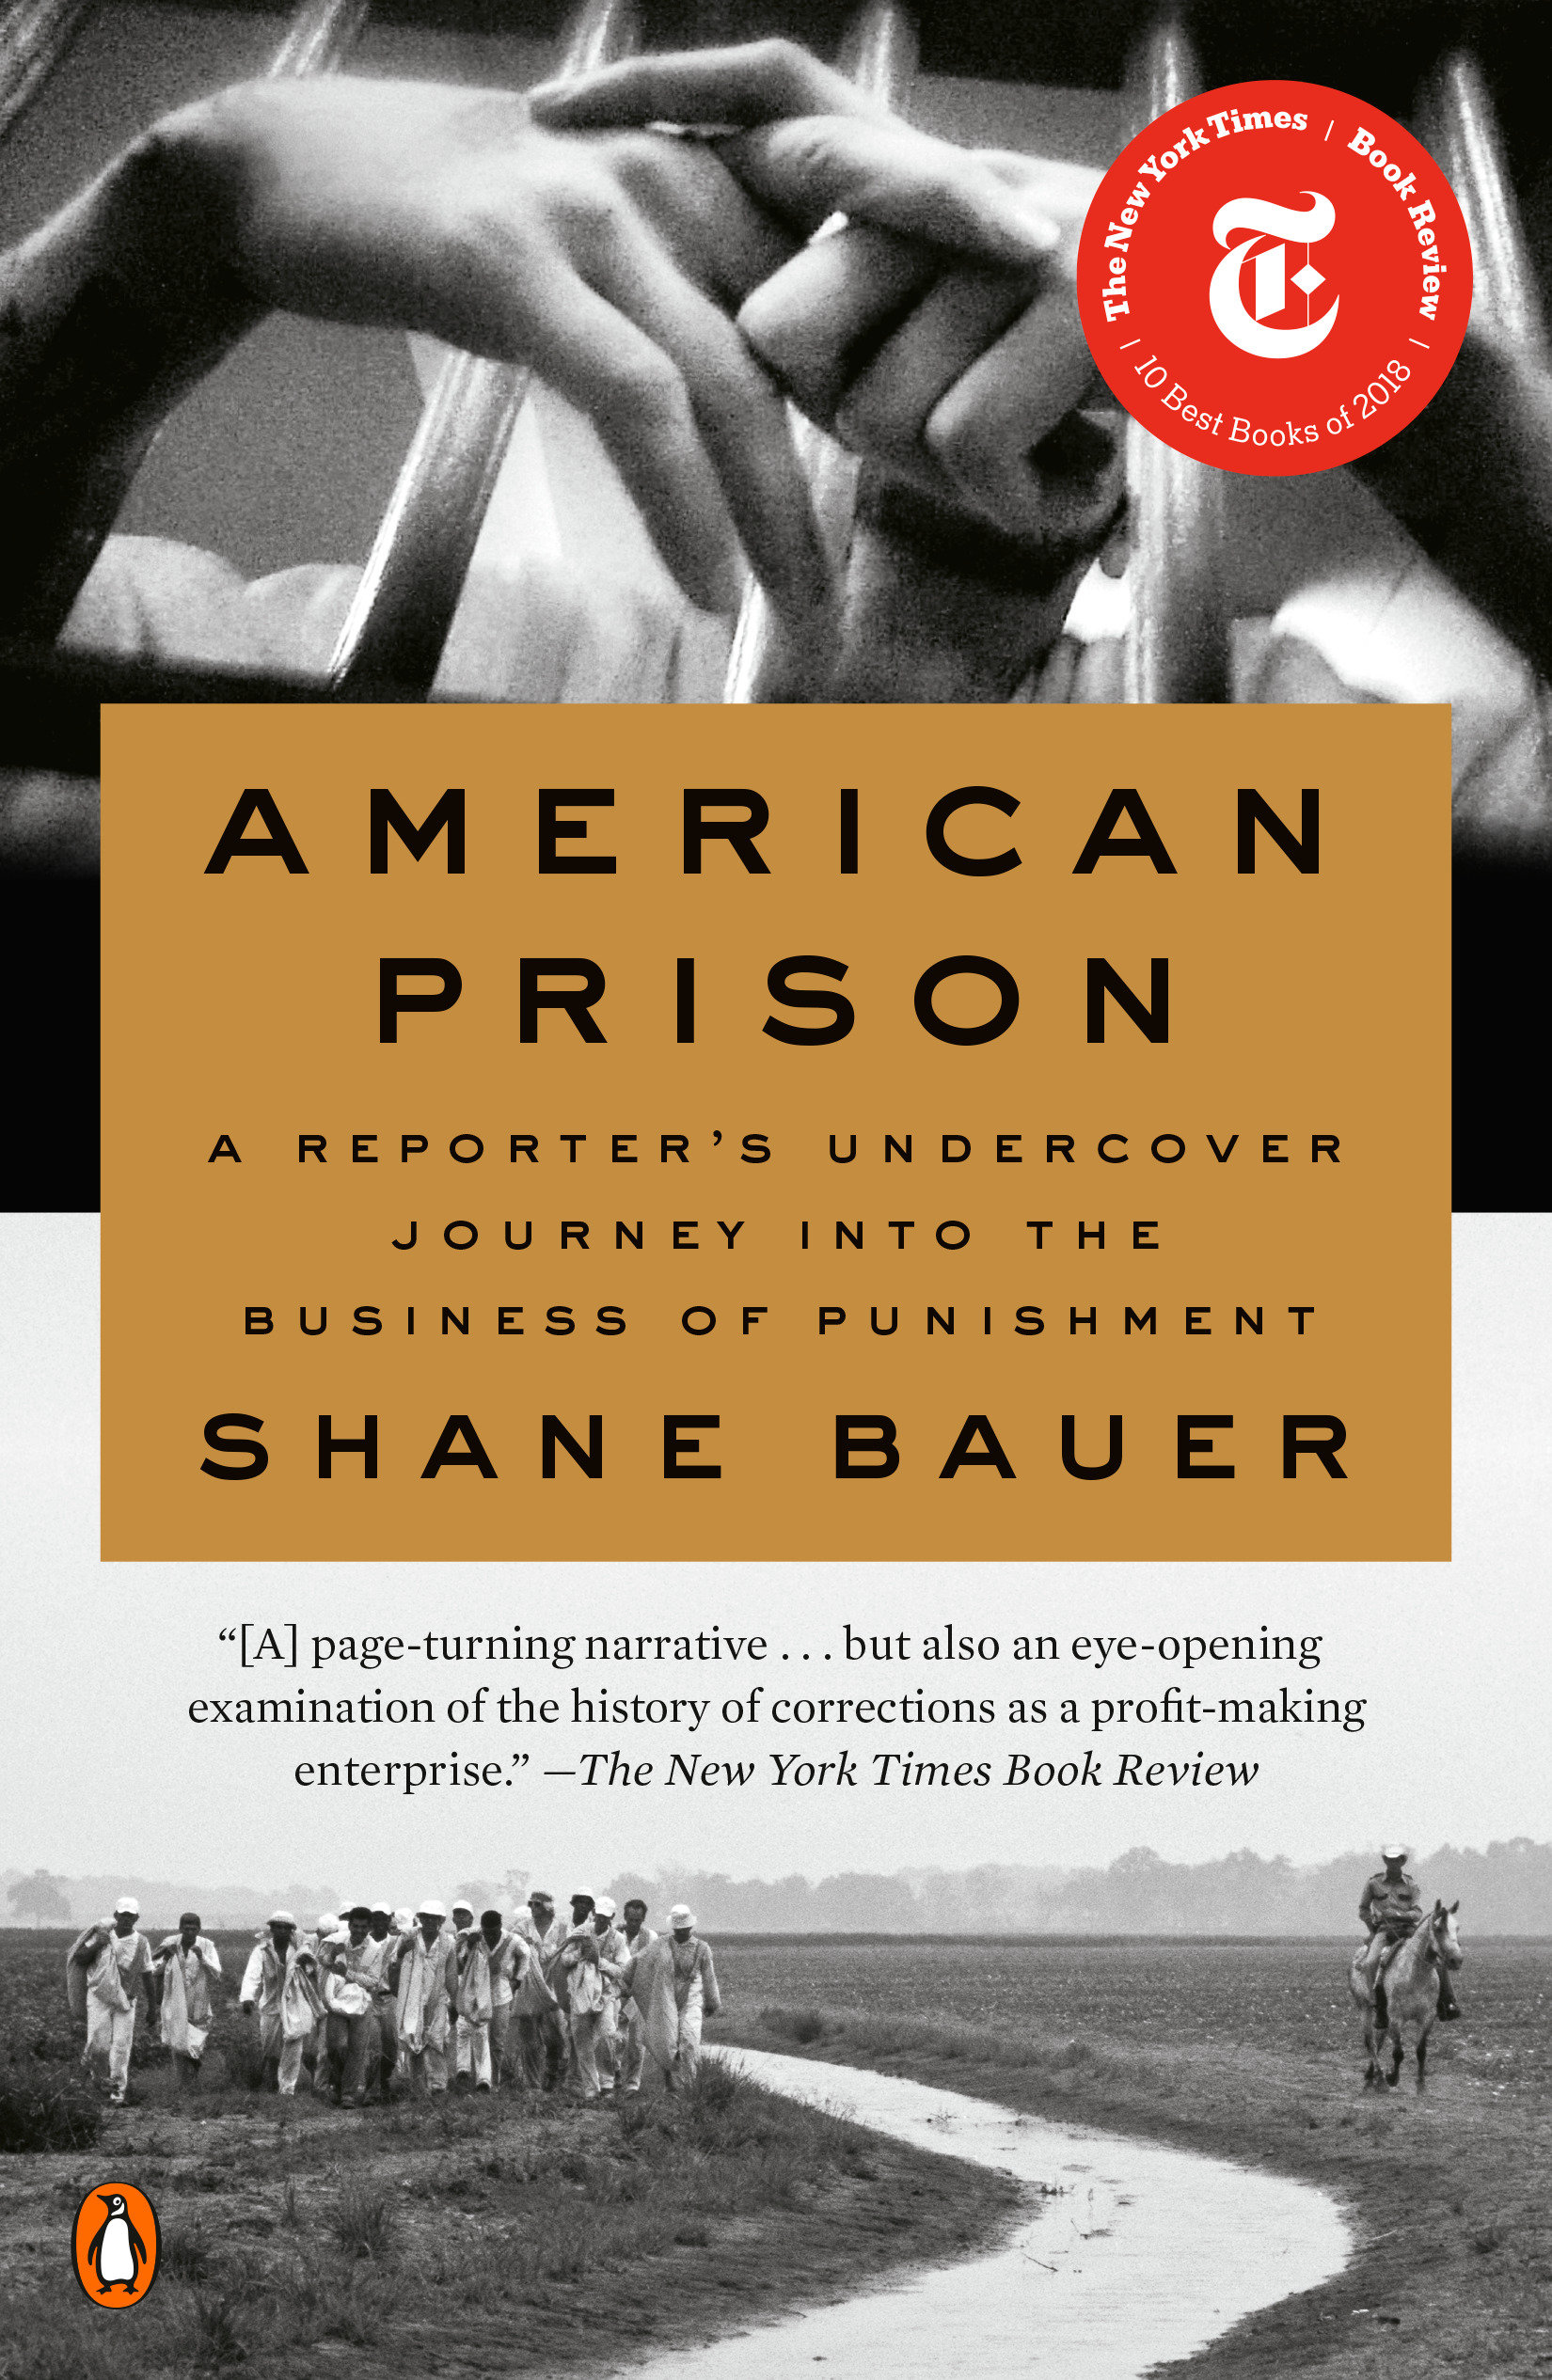 American Prison [electronic resource] : A Reporter's Undercover Journey into the Business of Punishment